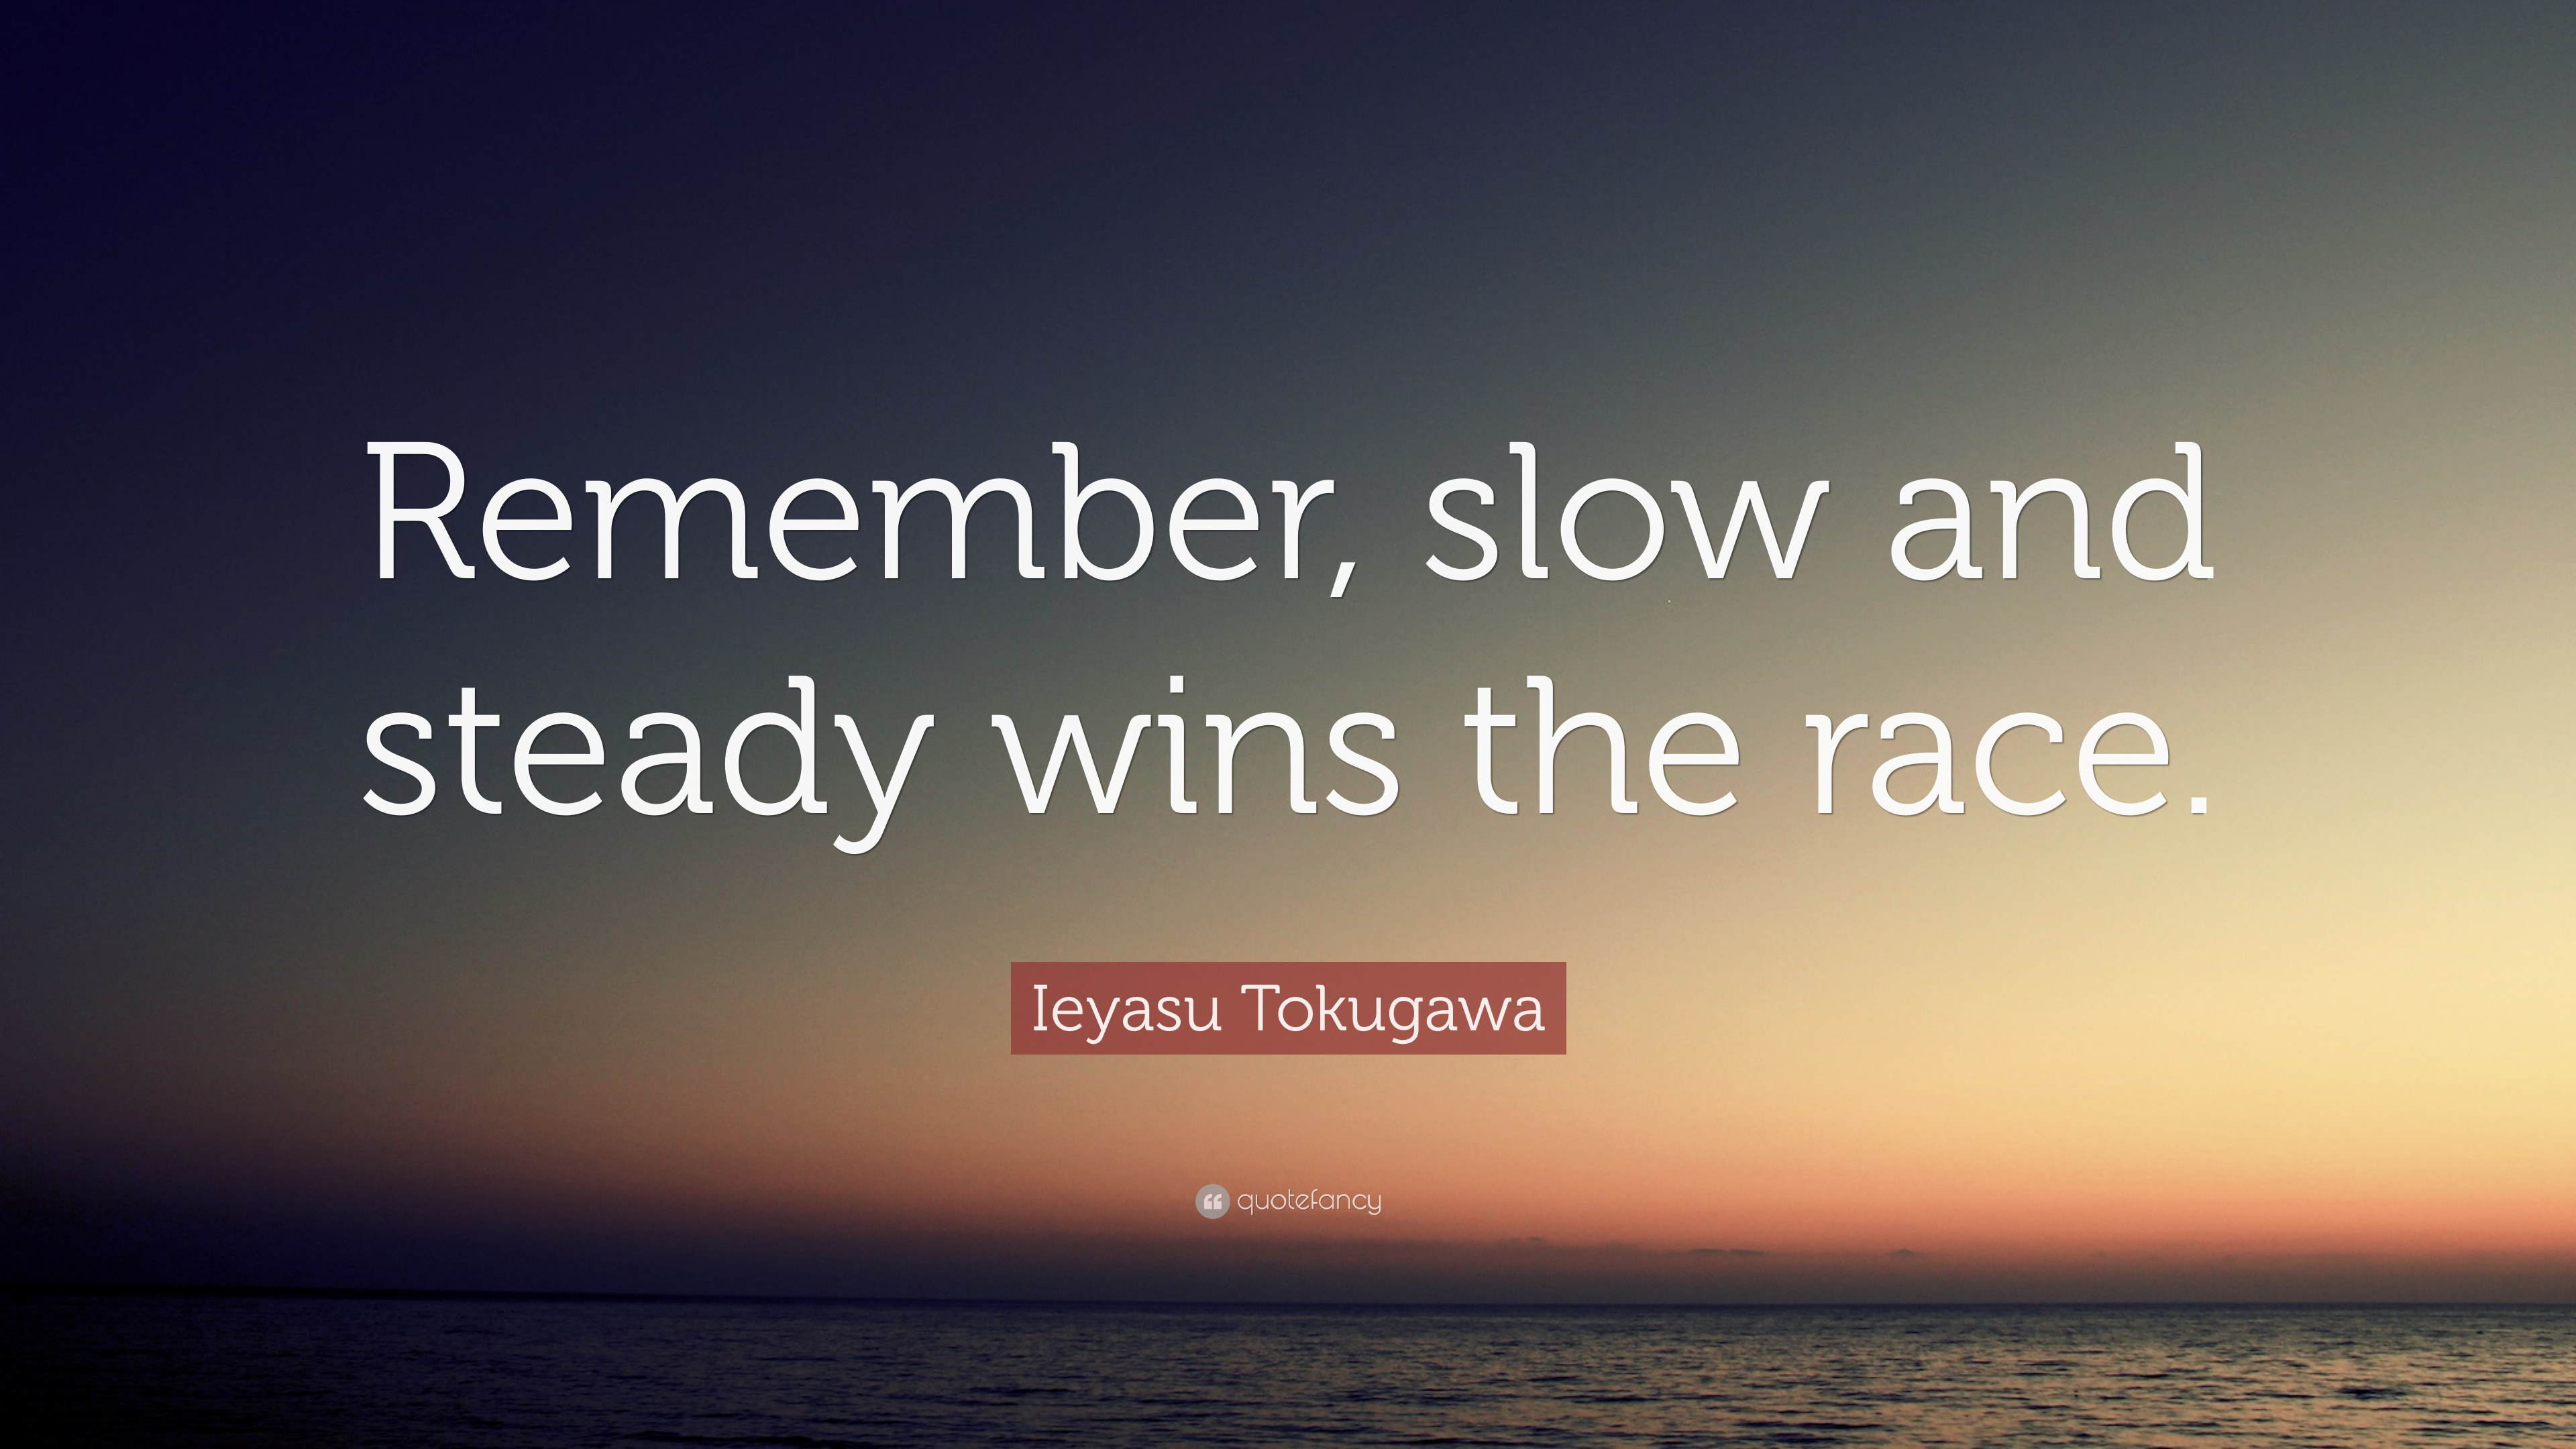 Ieyasu Tokugawa Quote Remember Slow And Steady Wins The Race 12 Wallpapers Quotefancy